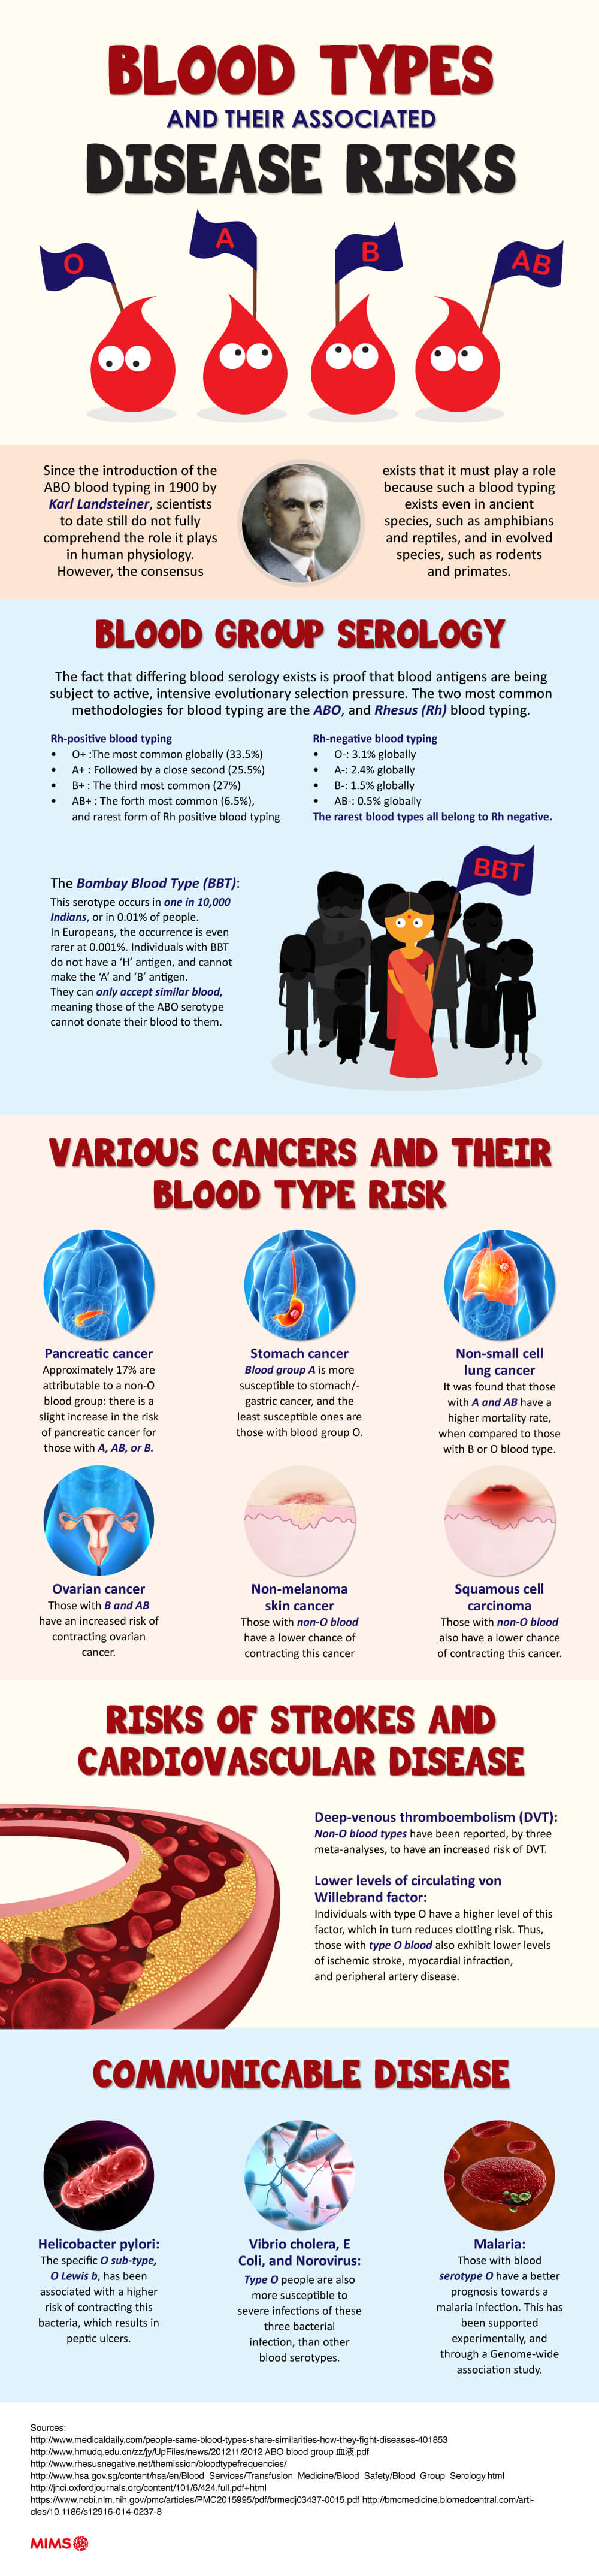 Blood-types--their-associated-disease-risks-infographic-plaza